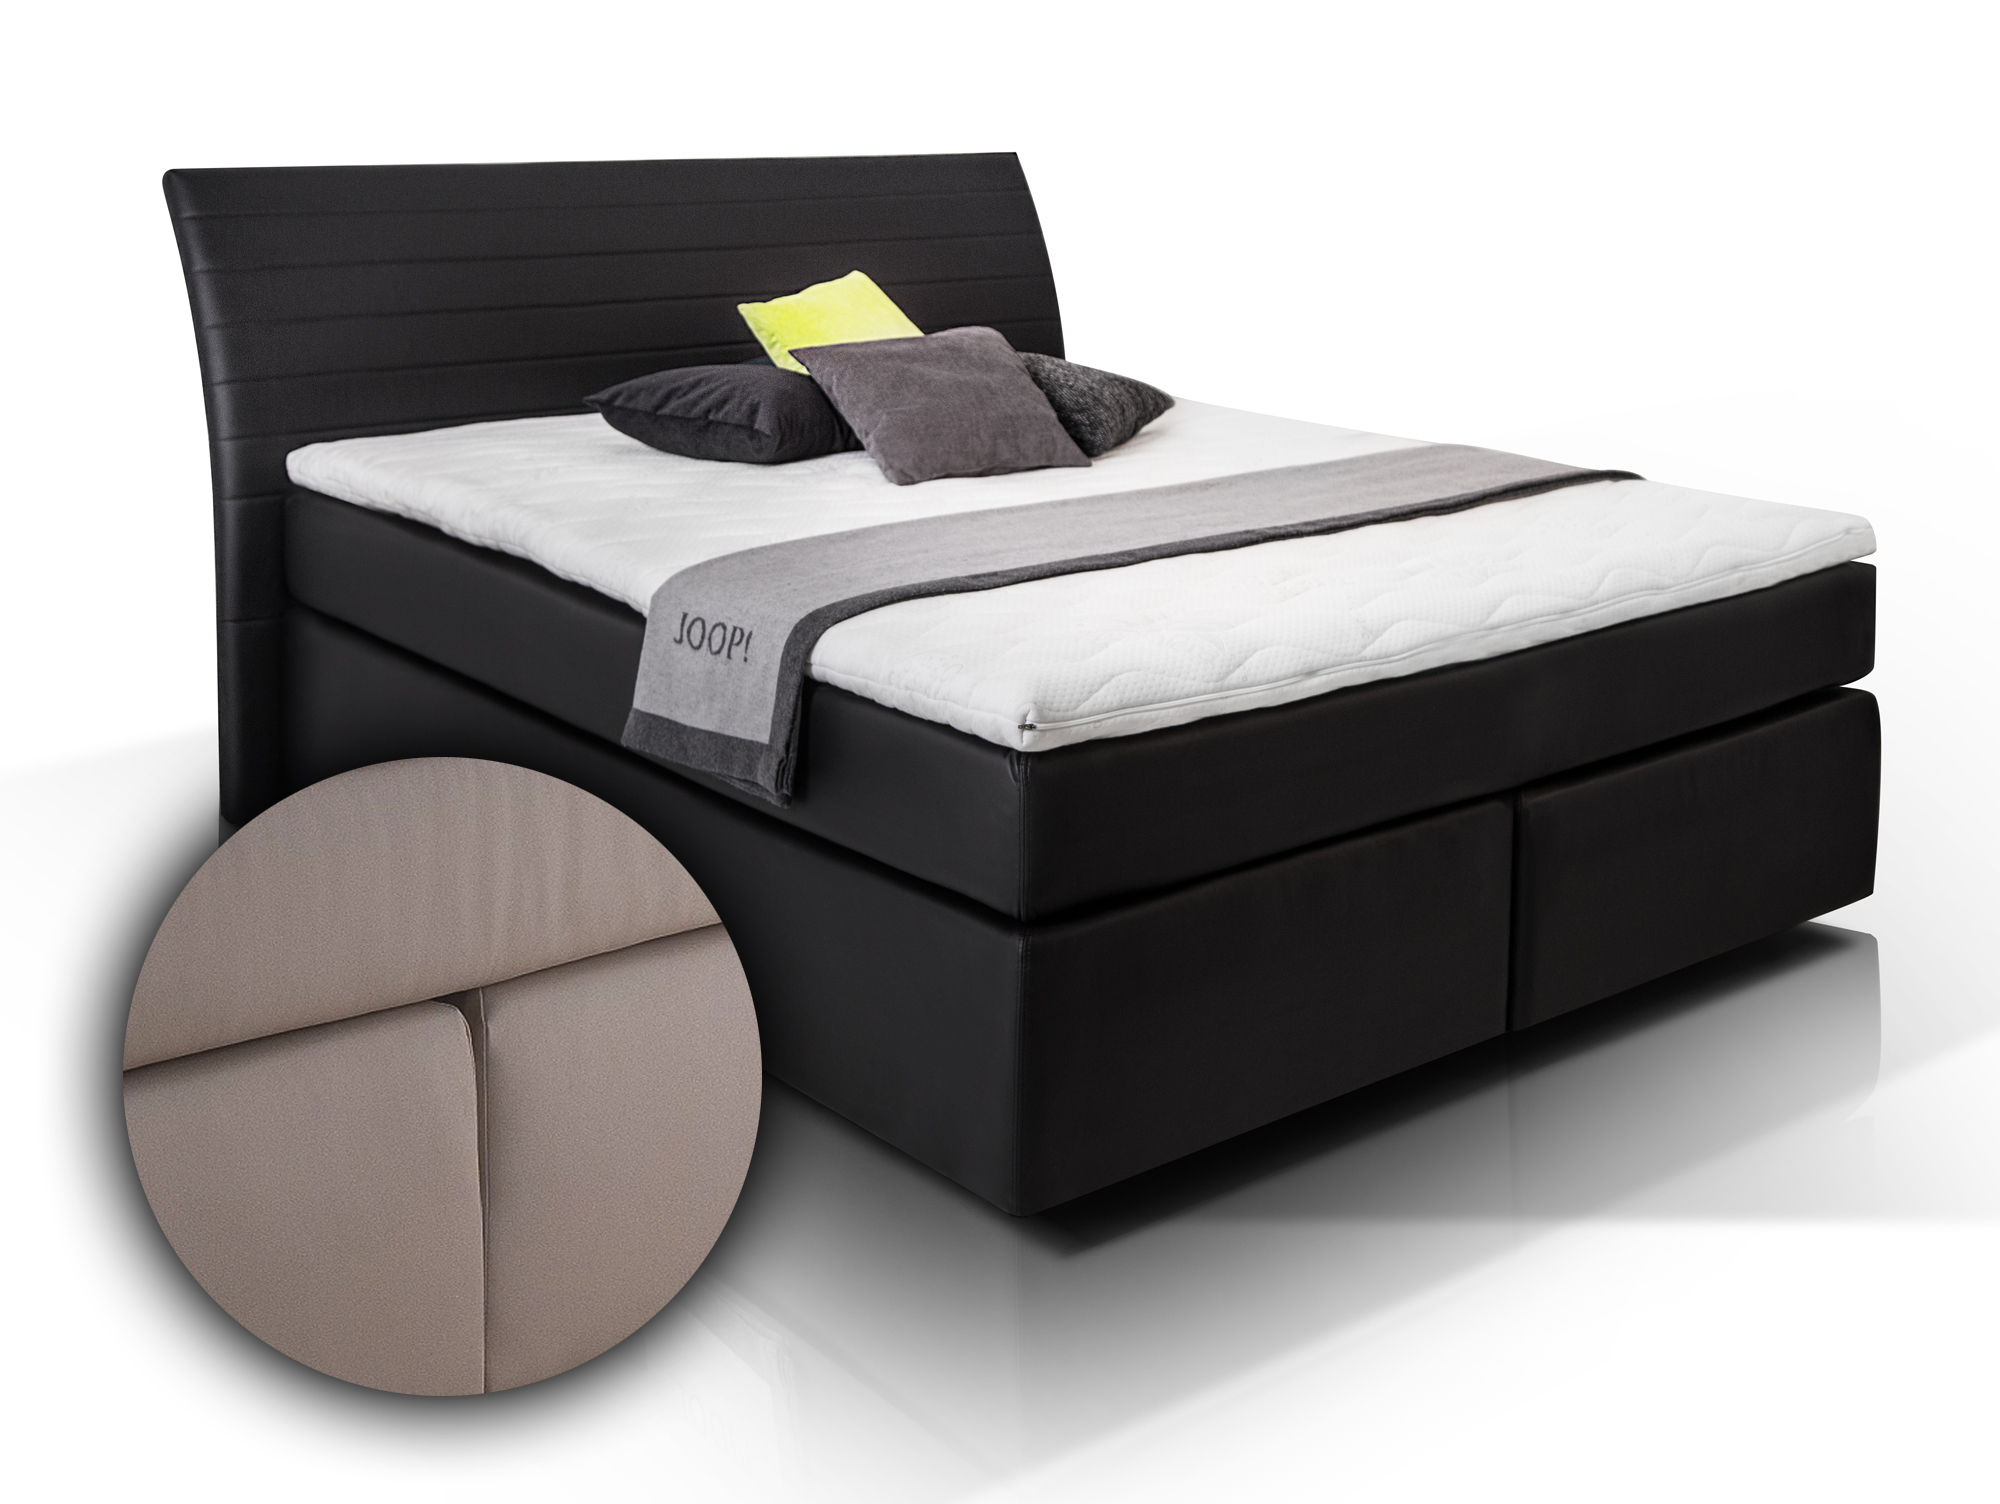 boxspringbett heaven 160x200 cm muddy h2 h3 160 x 200 cm muddy h rtegrad 2 3. Black Bedroom Furniture Sets. Home Design Ideas